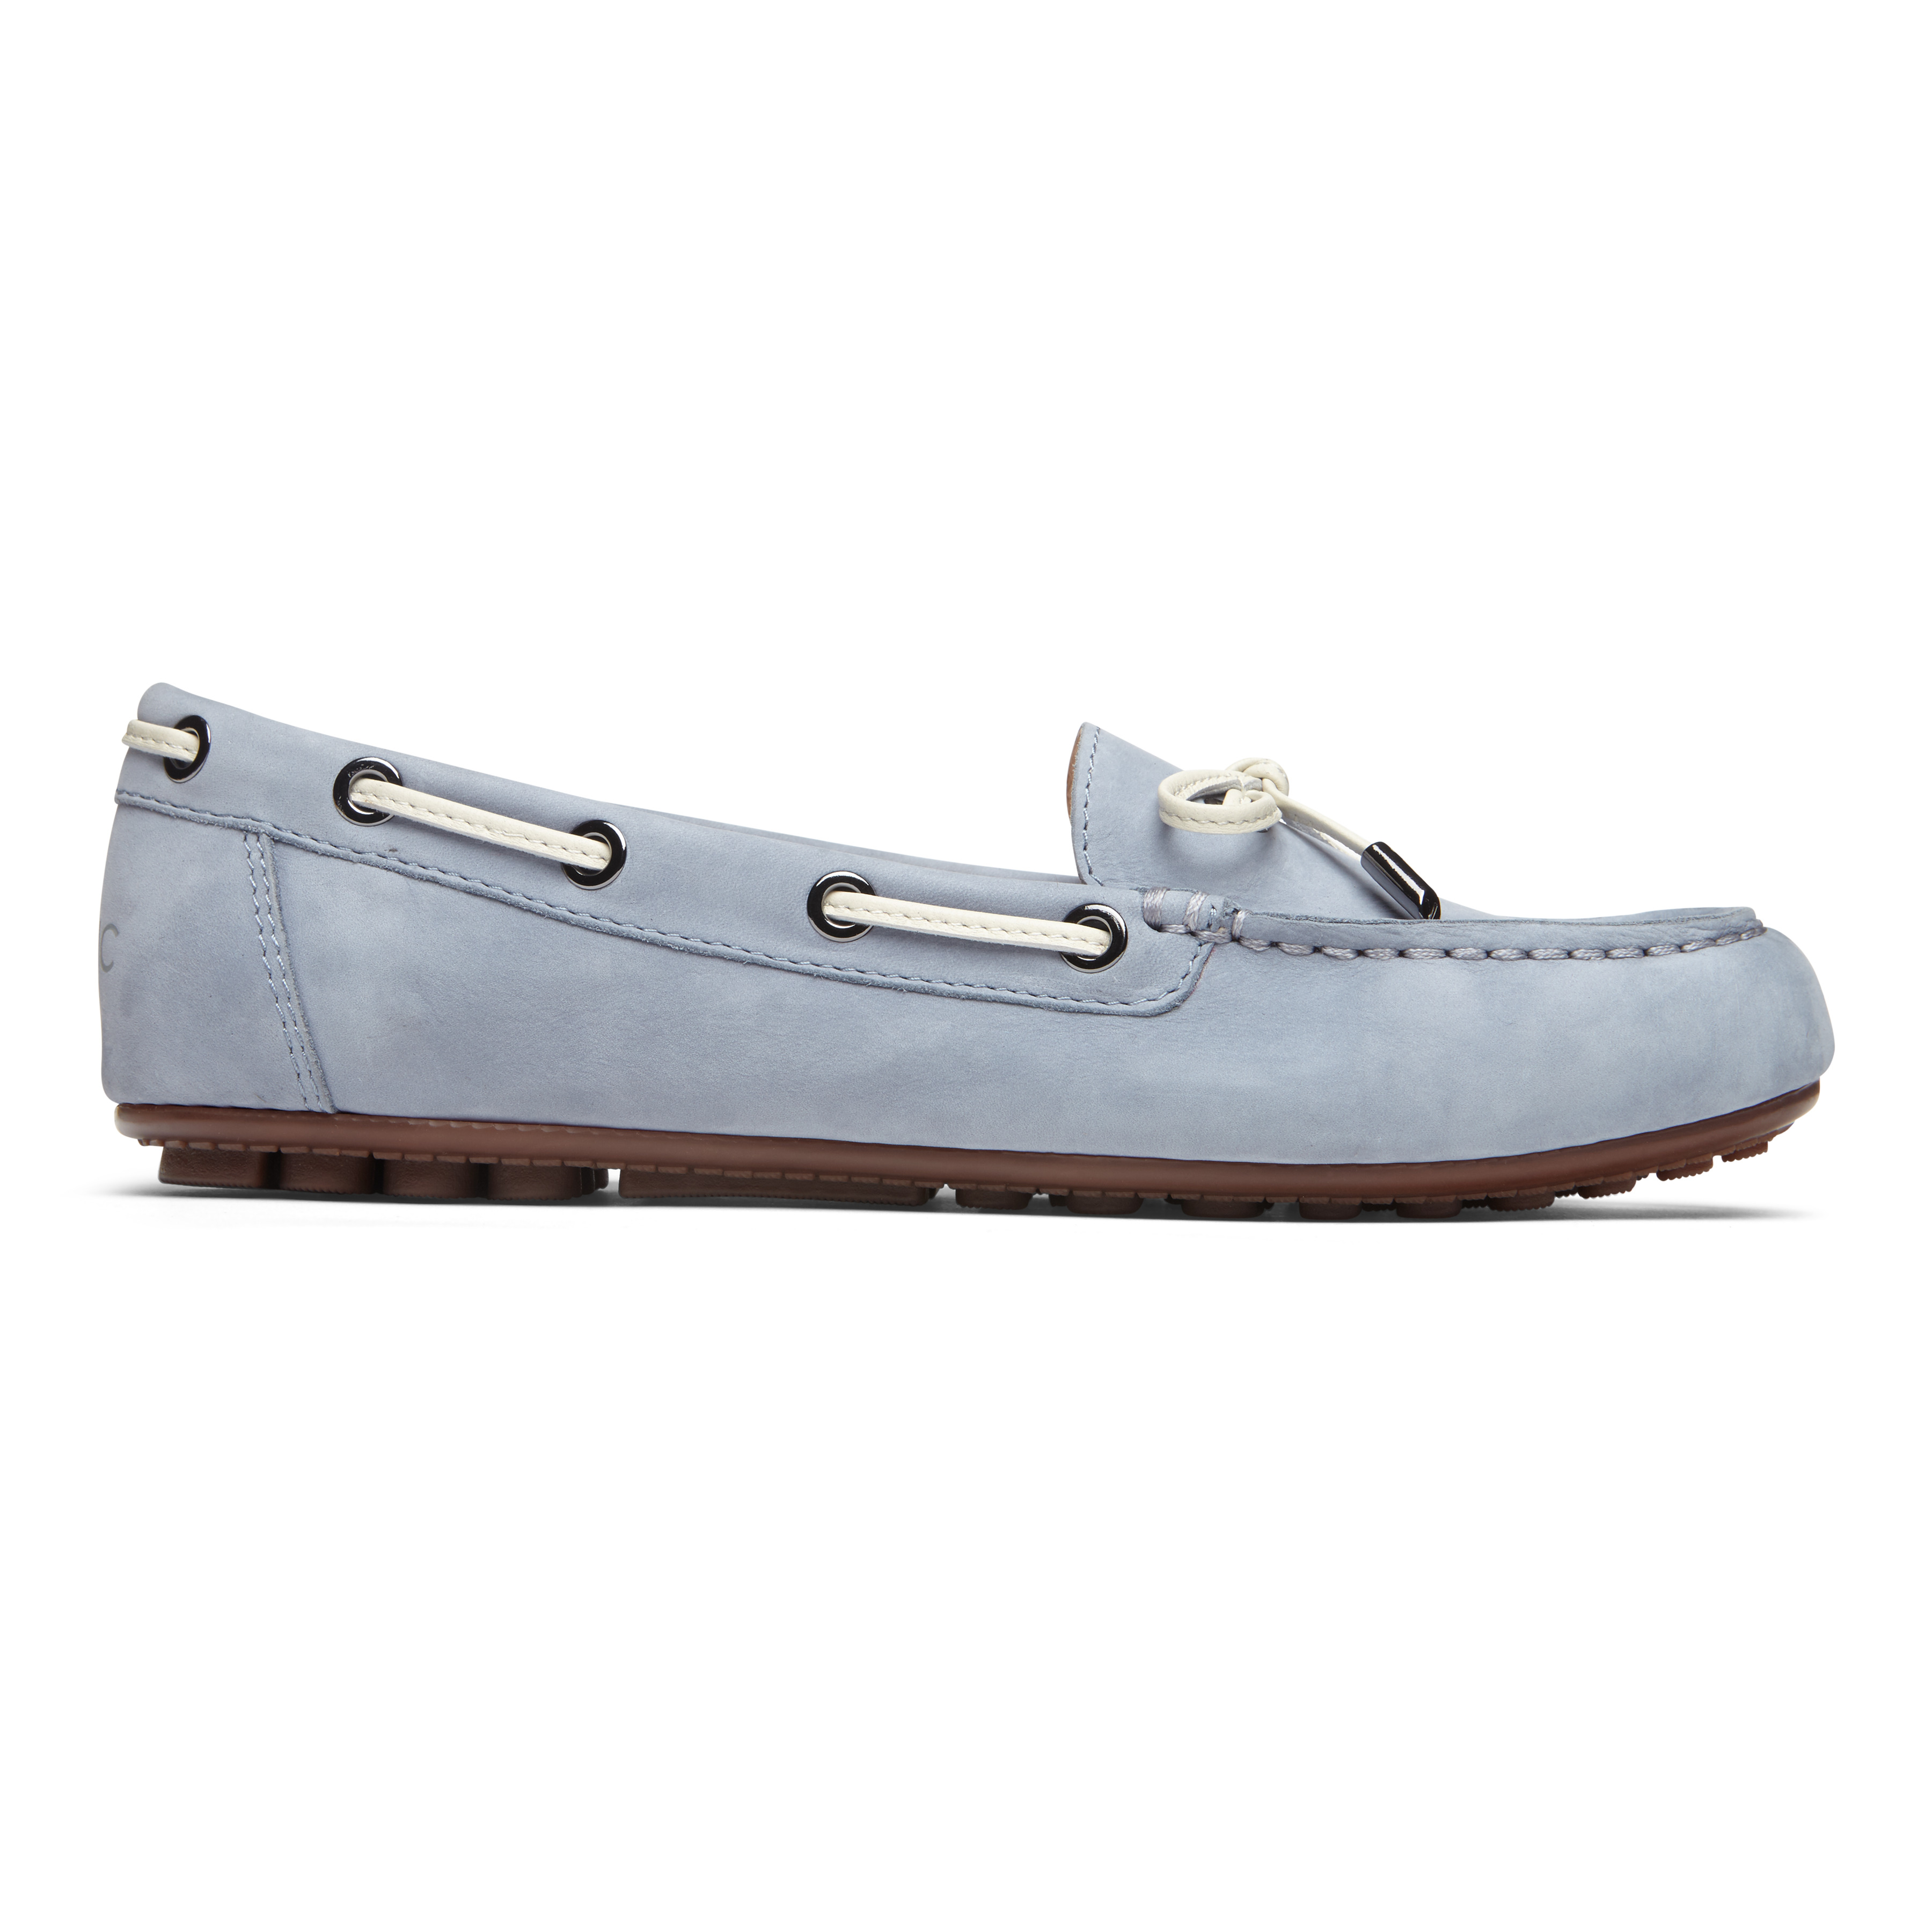 Vionic-Womens-Honor-Virginia-Leather-Moccasin-Comfort-Loafers thumbnail 11